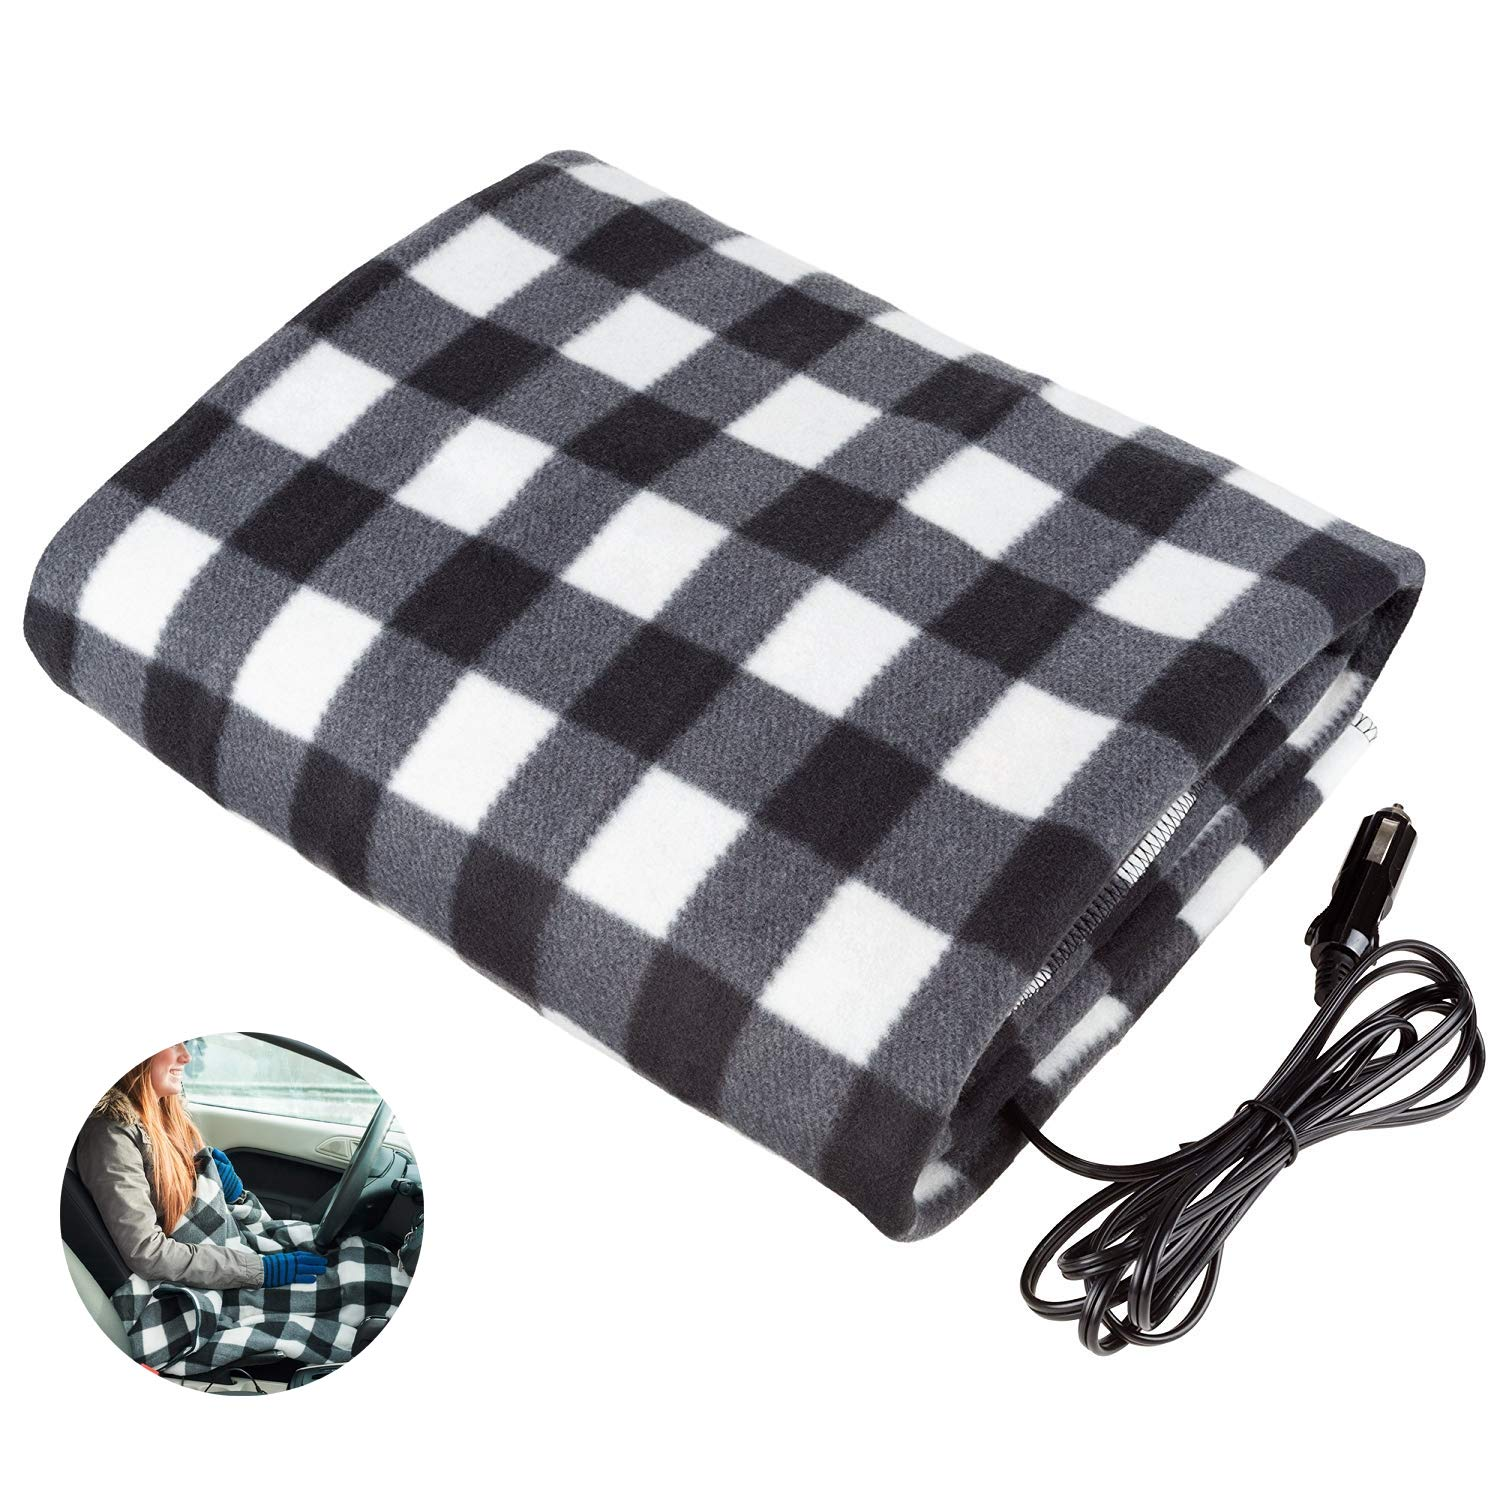 Electric Car Blanket-Car Electric Blanket Electric Car Heating Blanket 12 Volt Great for Cold Weather, Tailgating, and Emergency Kits (43inches59 inches) by HJJH